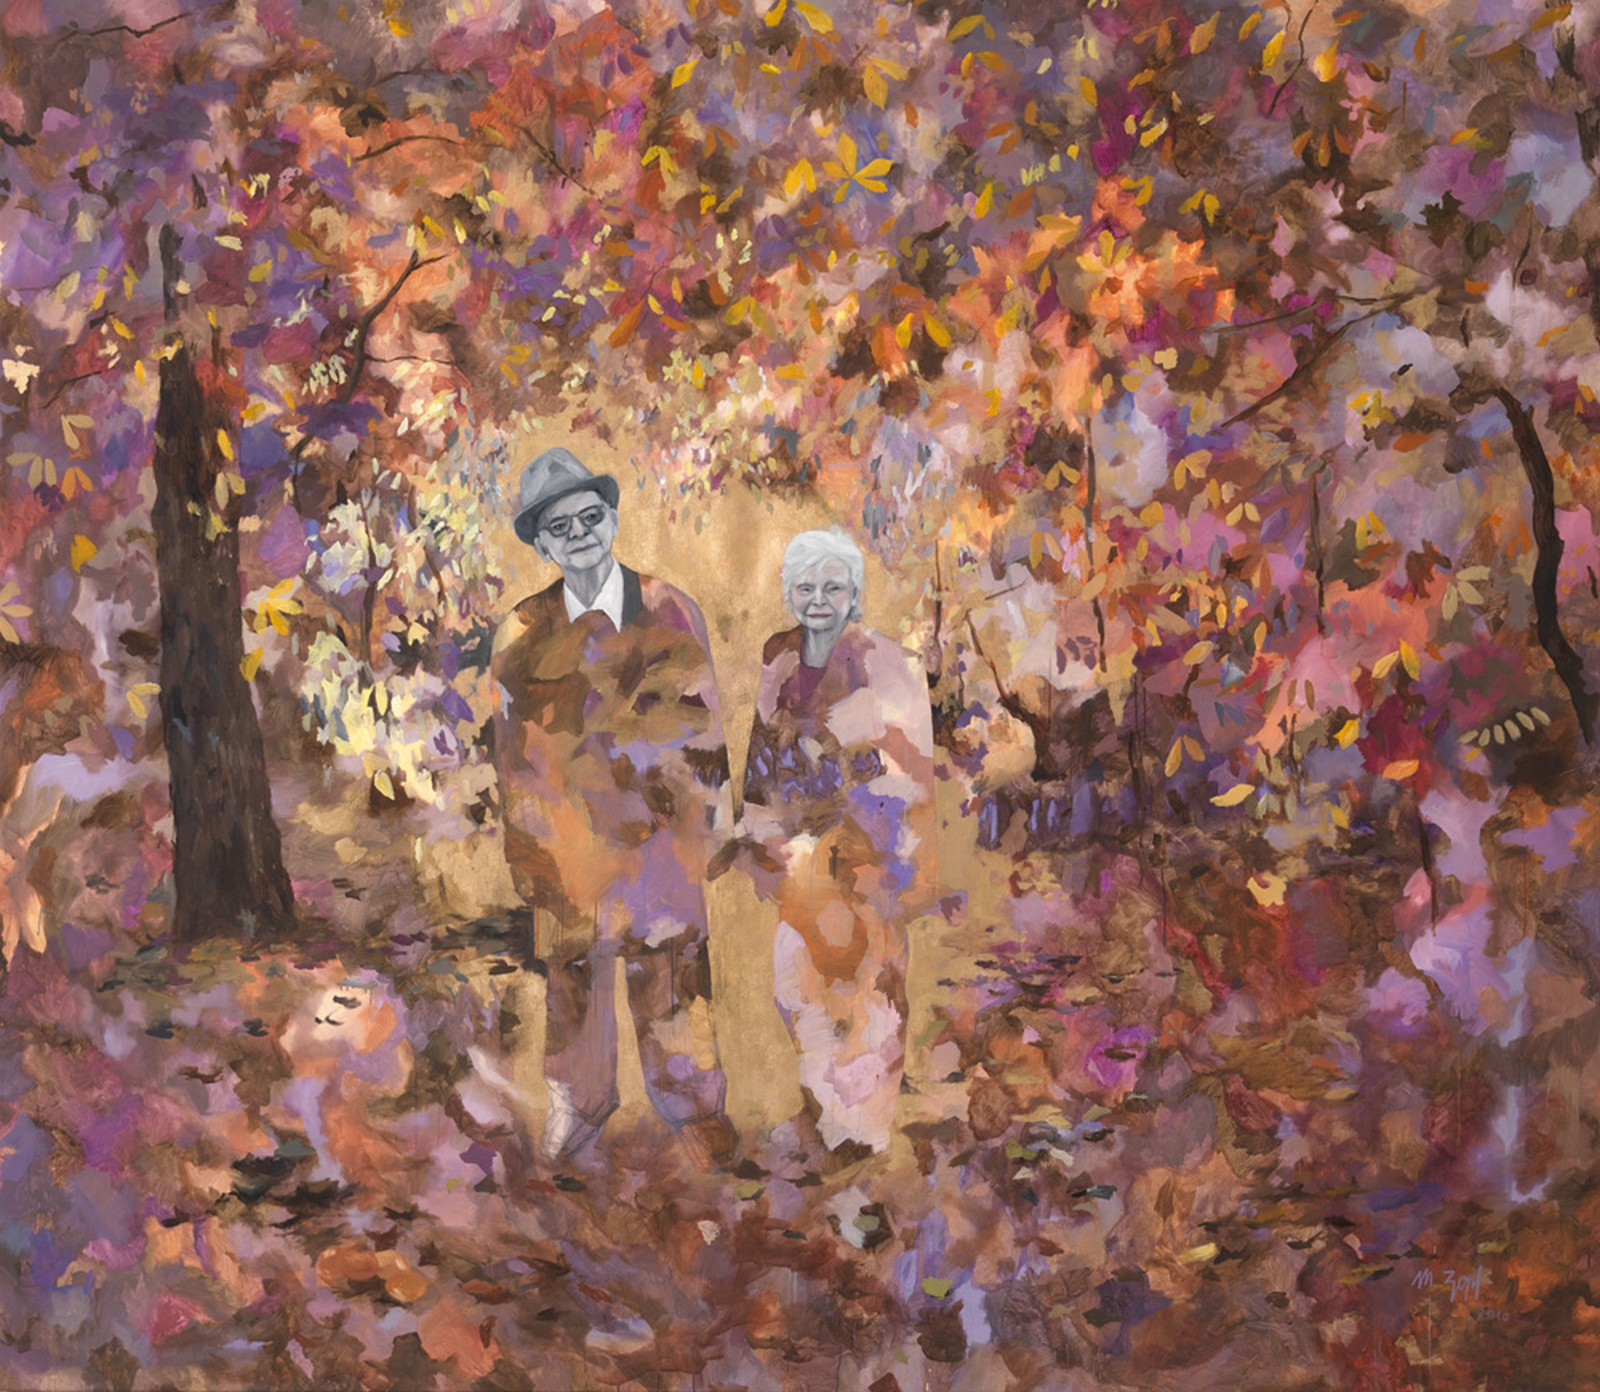 2010, oil on canvas, 270 x 310 cm